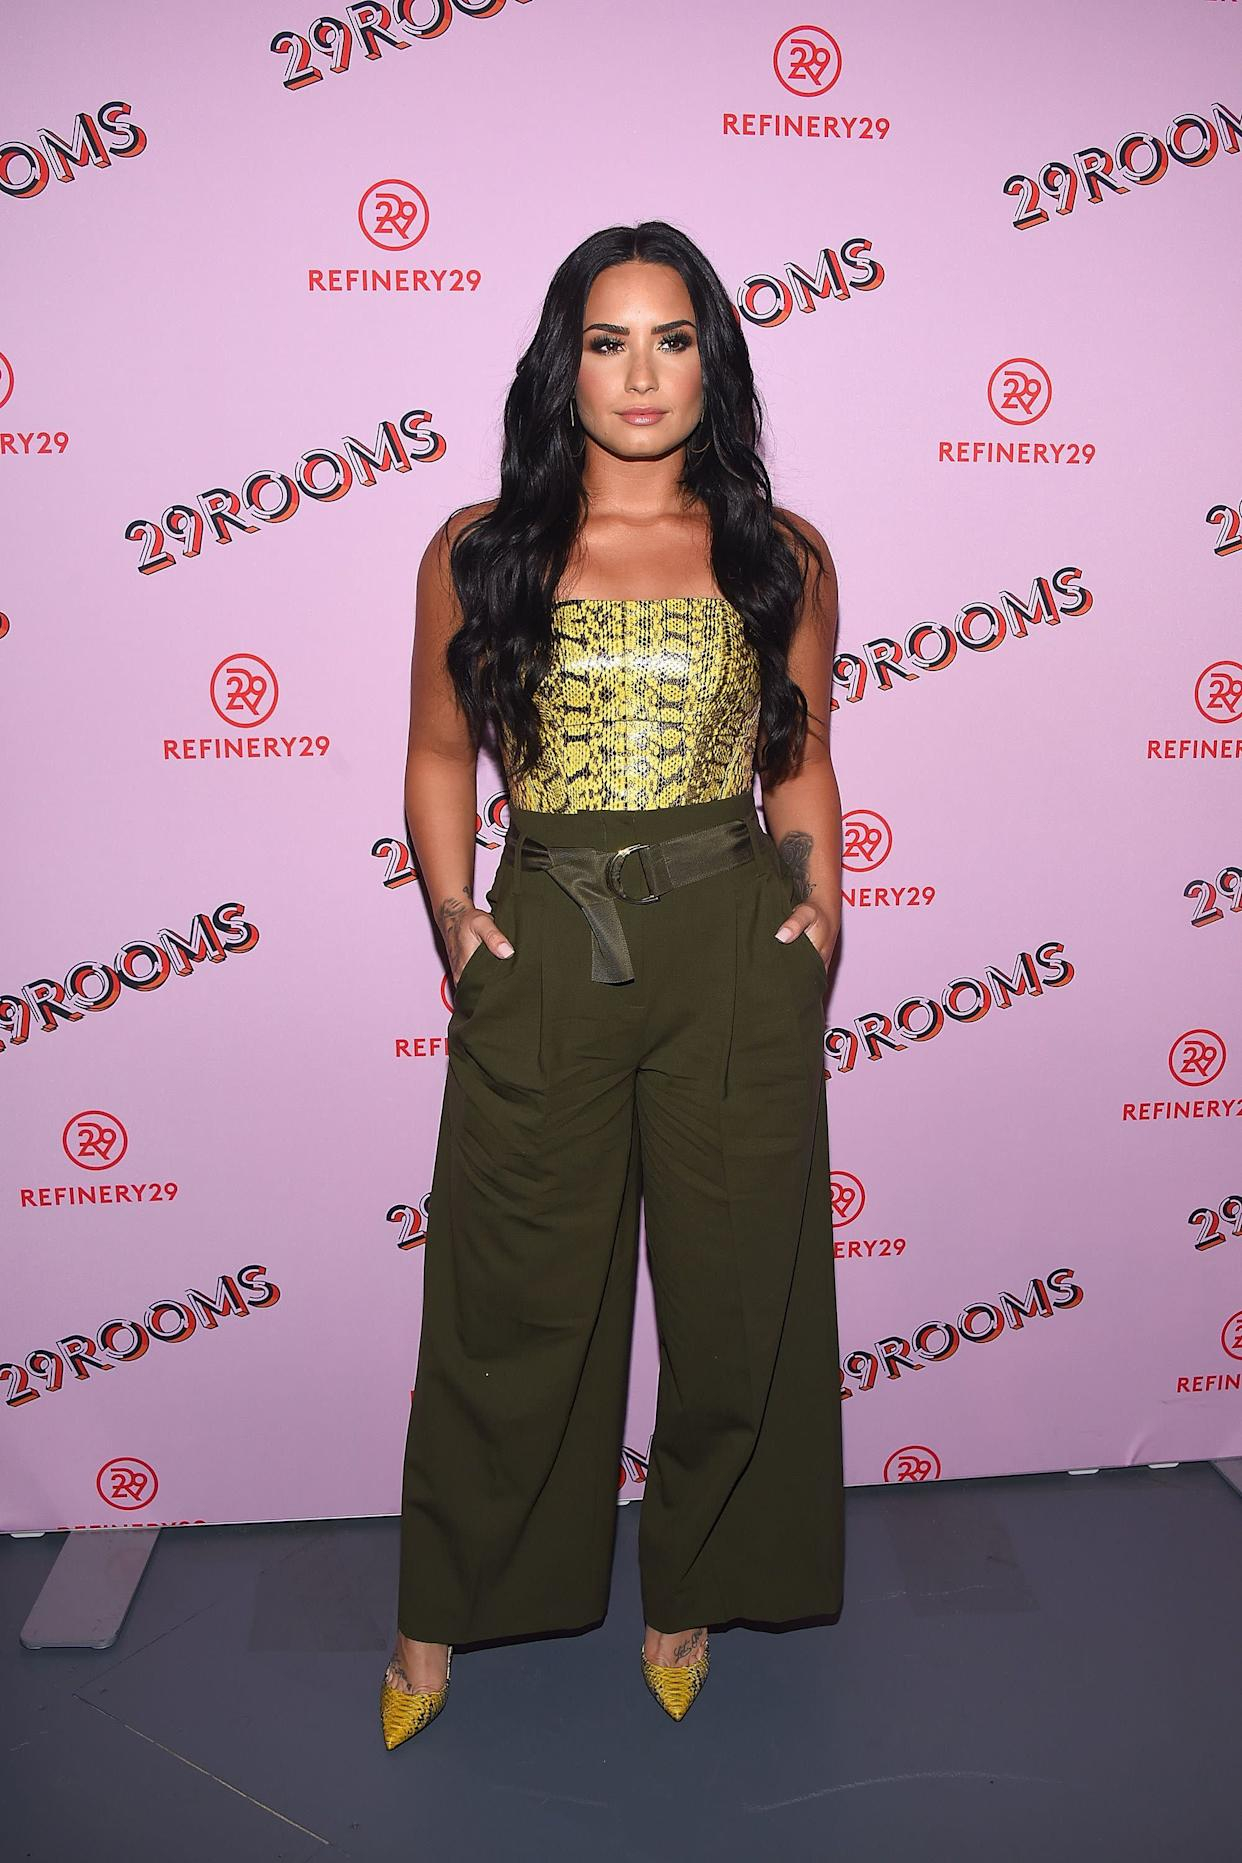 LOS ANGELES, CA - DECEMBER 06: Demi Lovato attends Refinery29 29Rooms Los Angeles: Turn It Into Art at ROW DTLA on December 6, 2017 in Los Angeles, California. (Photo by Araya Diaz/WireImage)